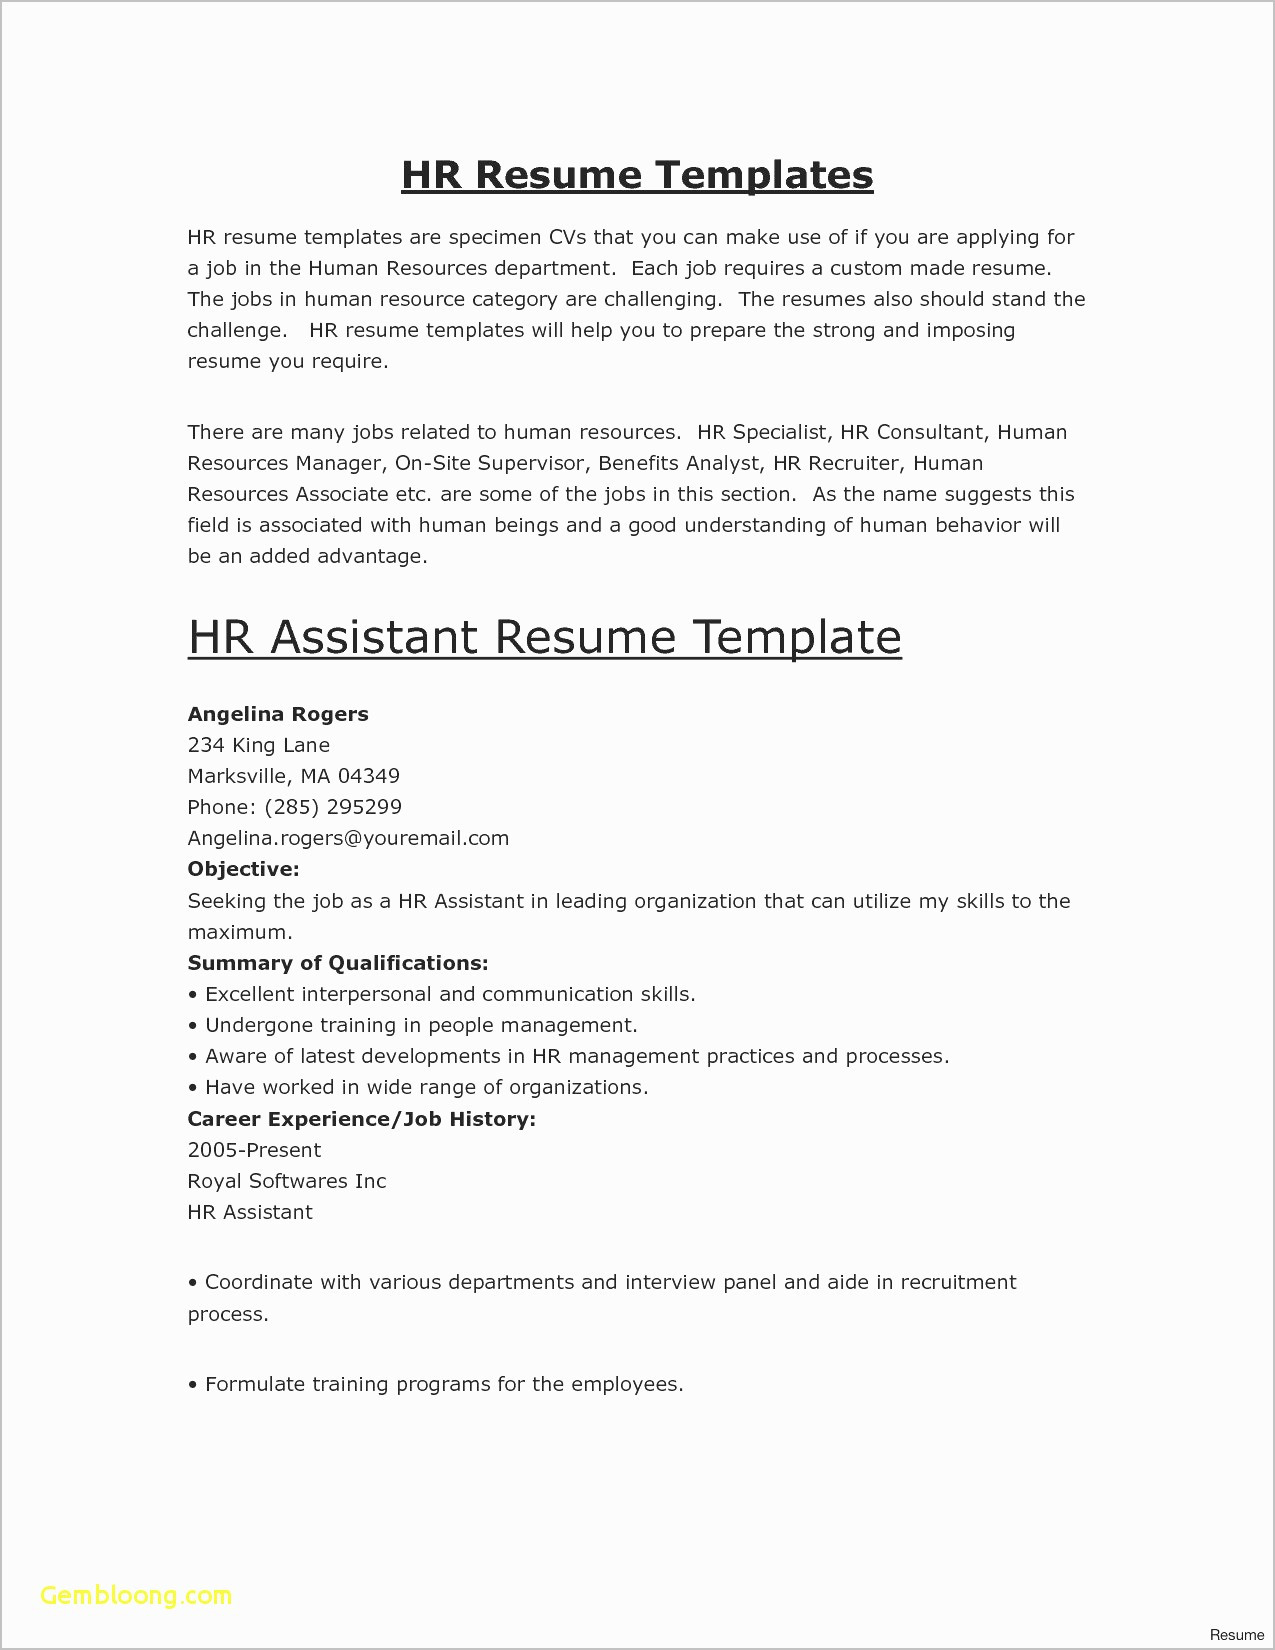 Dental assistant Resume Templates - 50 Best Dental assistant Resume Examples